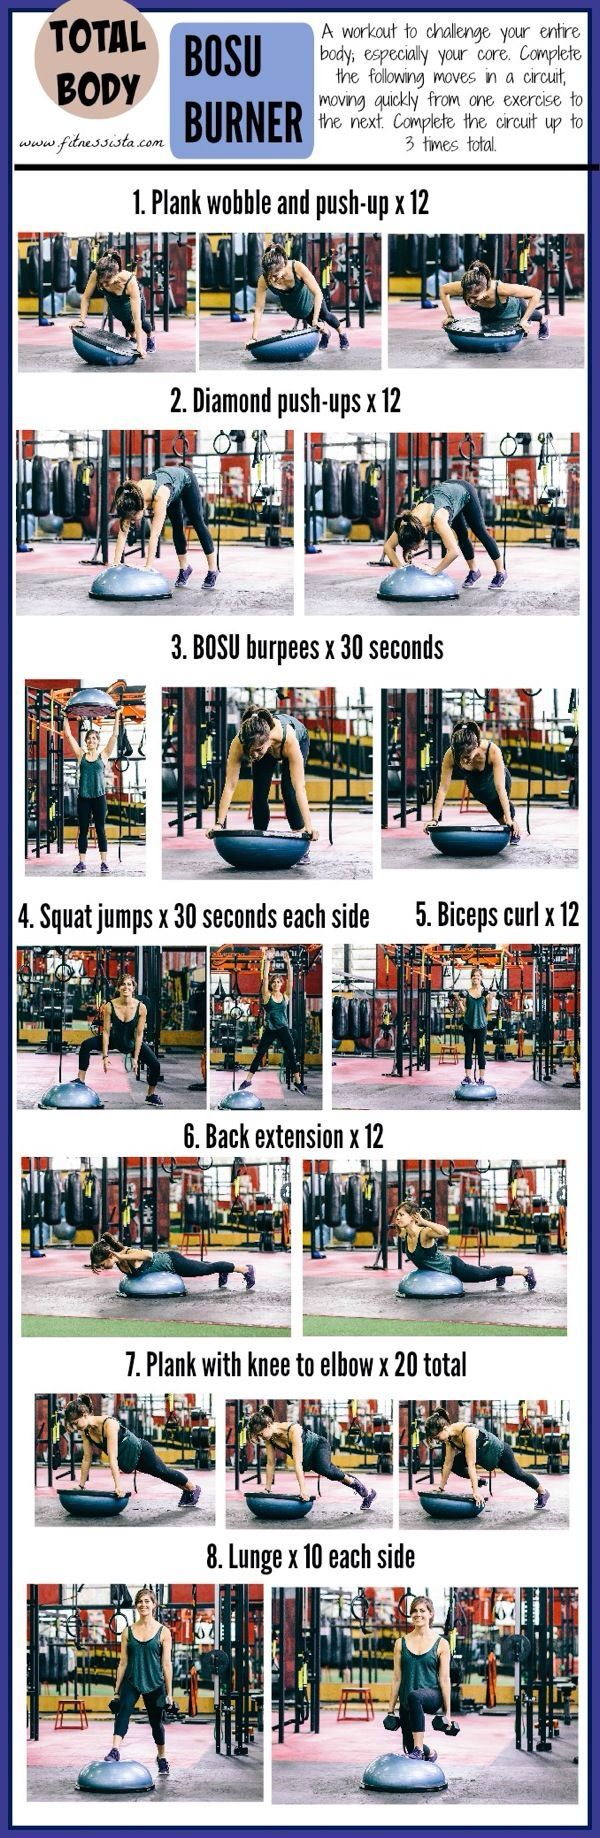 Berg katherine physical therapy - Total Body Body Ball Workout